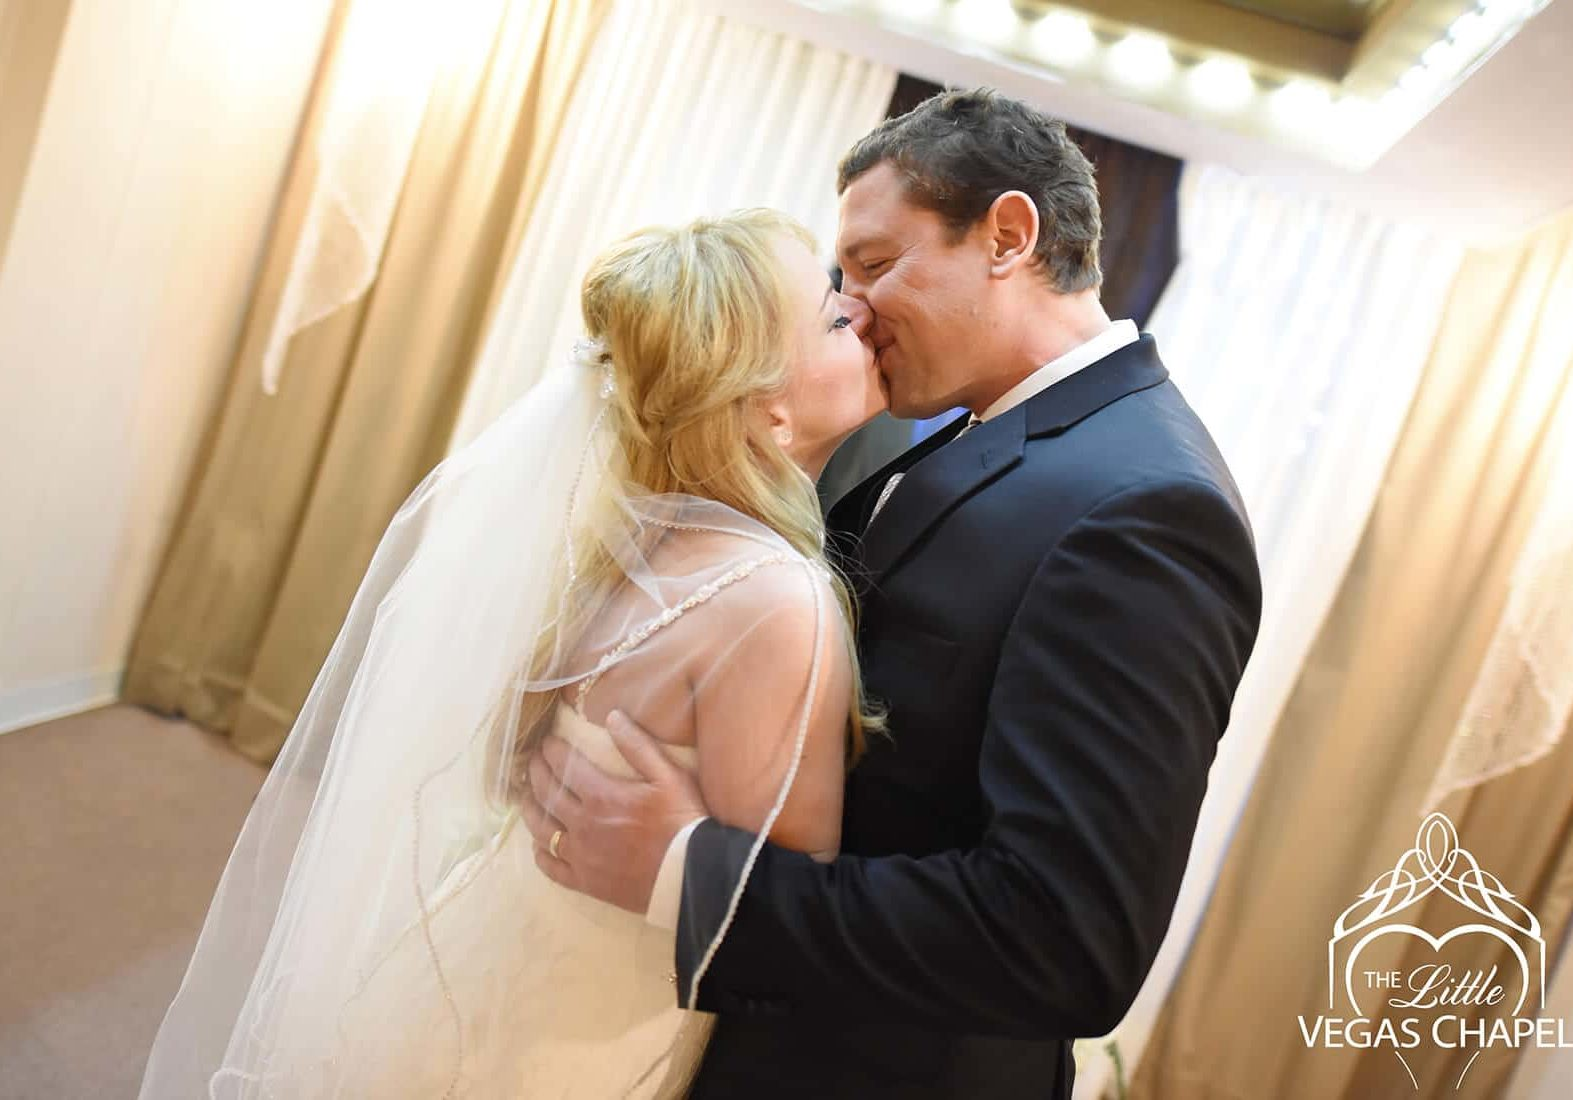 First dance wedding songs from the 90s to enjoy